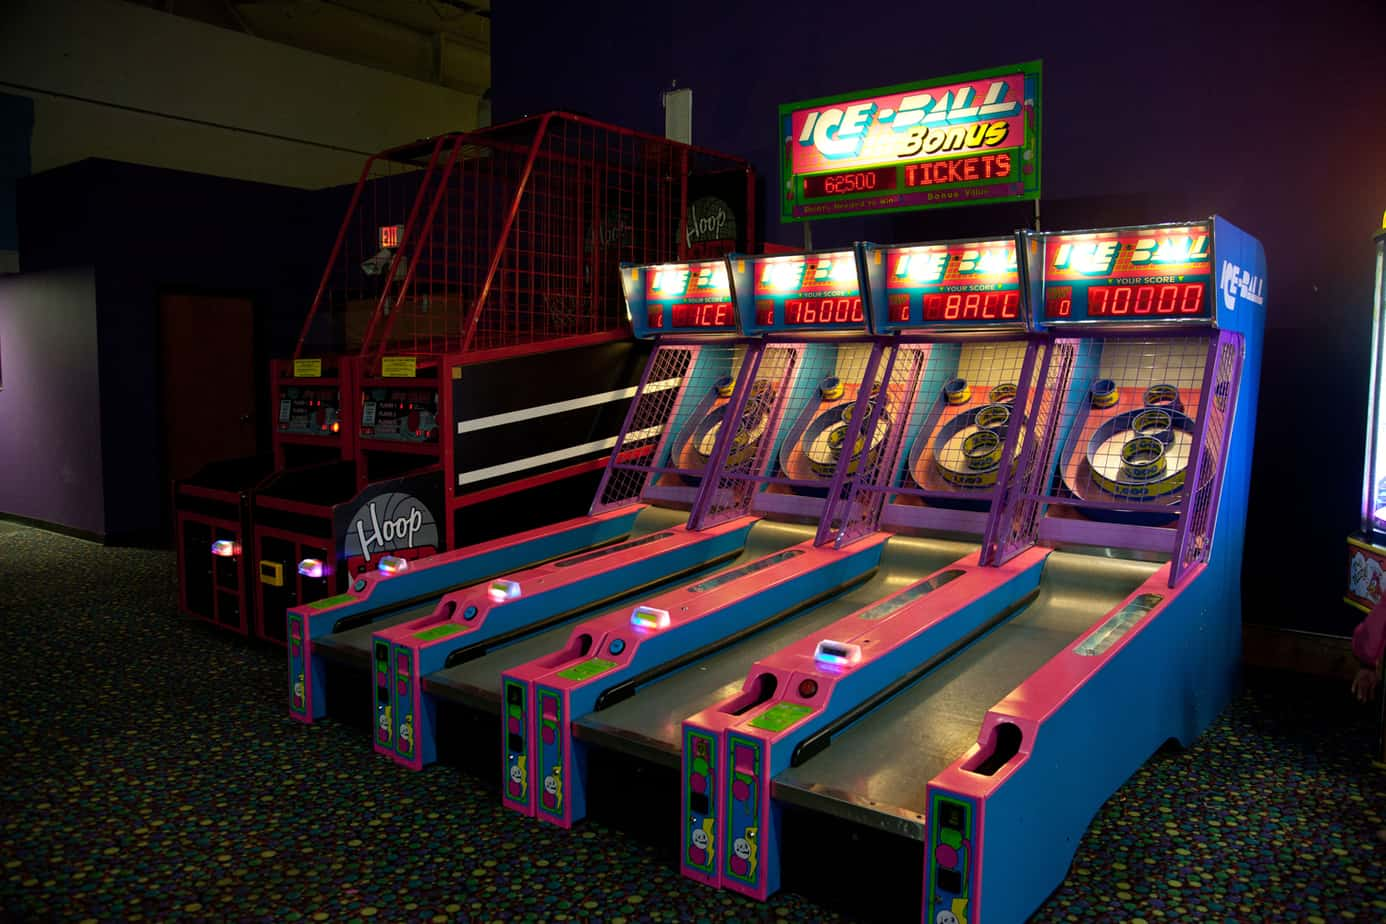 Arcade games at Metro Fun Center